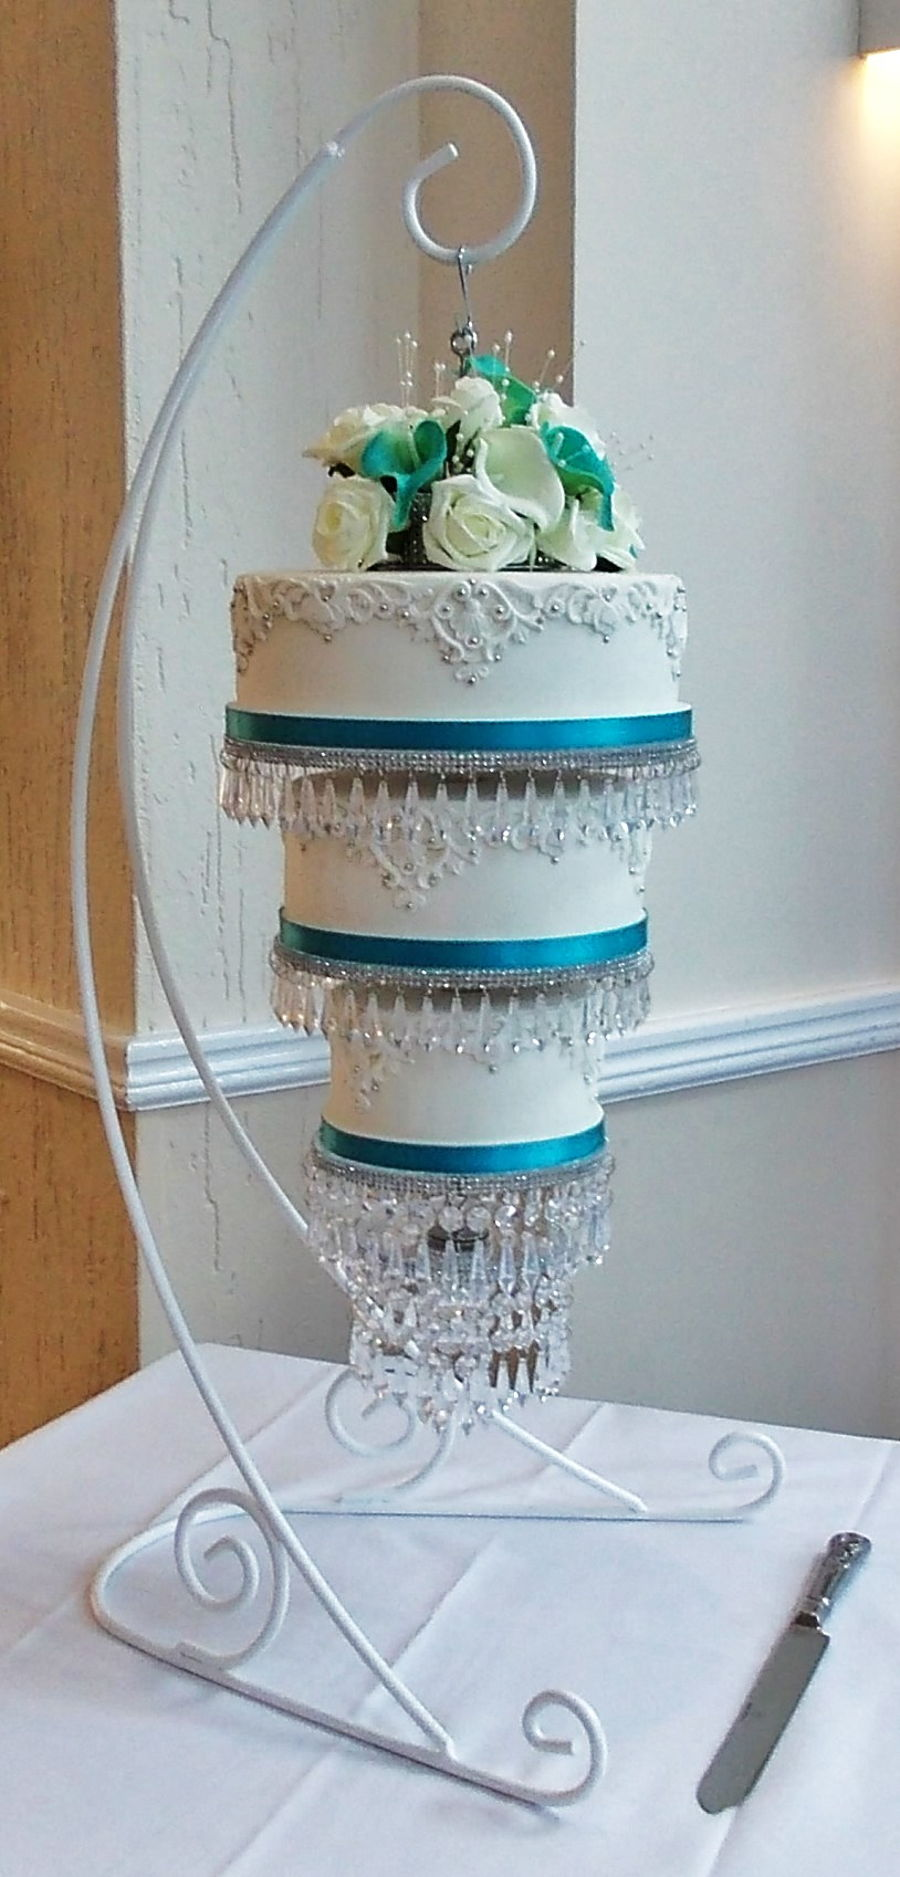 Hanging chandelier wedding cake cakecentral hanging chandelier wedding cake on cake central arubaitofo Image collections